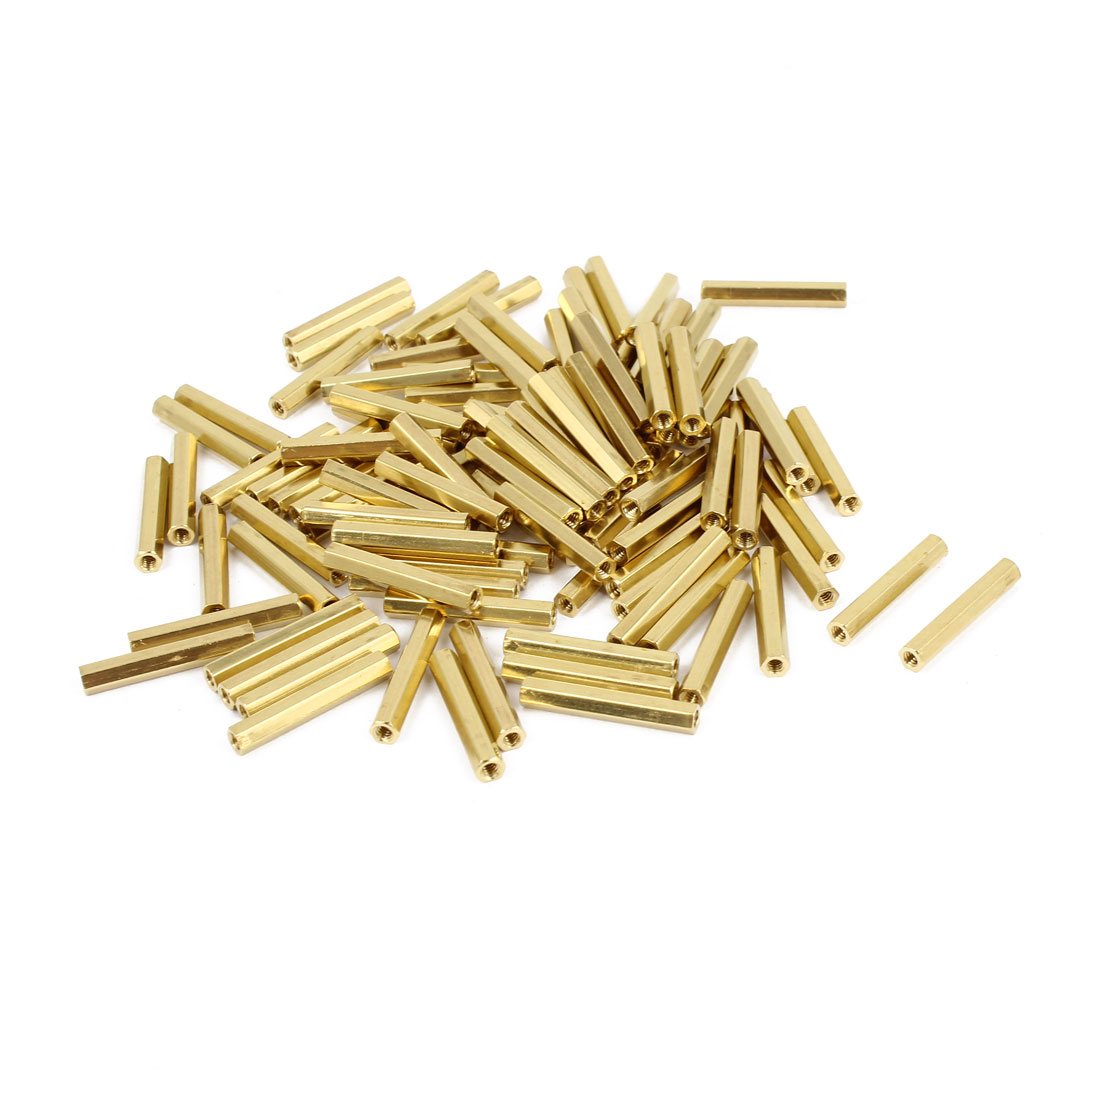 100 Pcs M2 Female Thread Brass Pillar Standoff Hexagonal Spacer 19mm Length